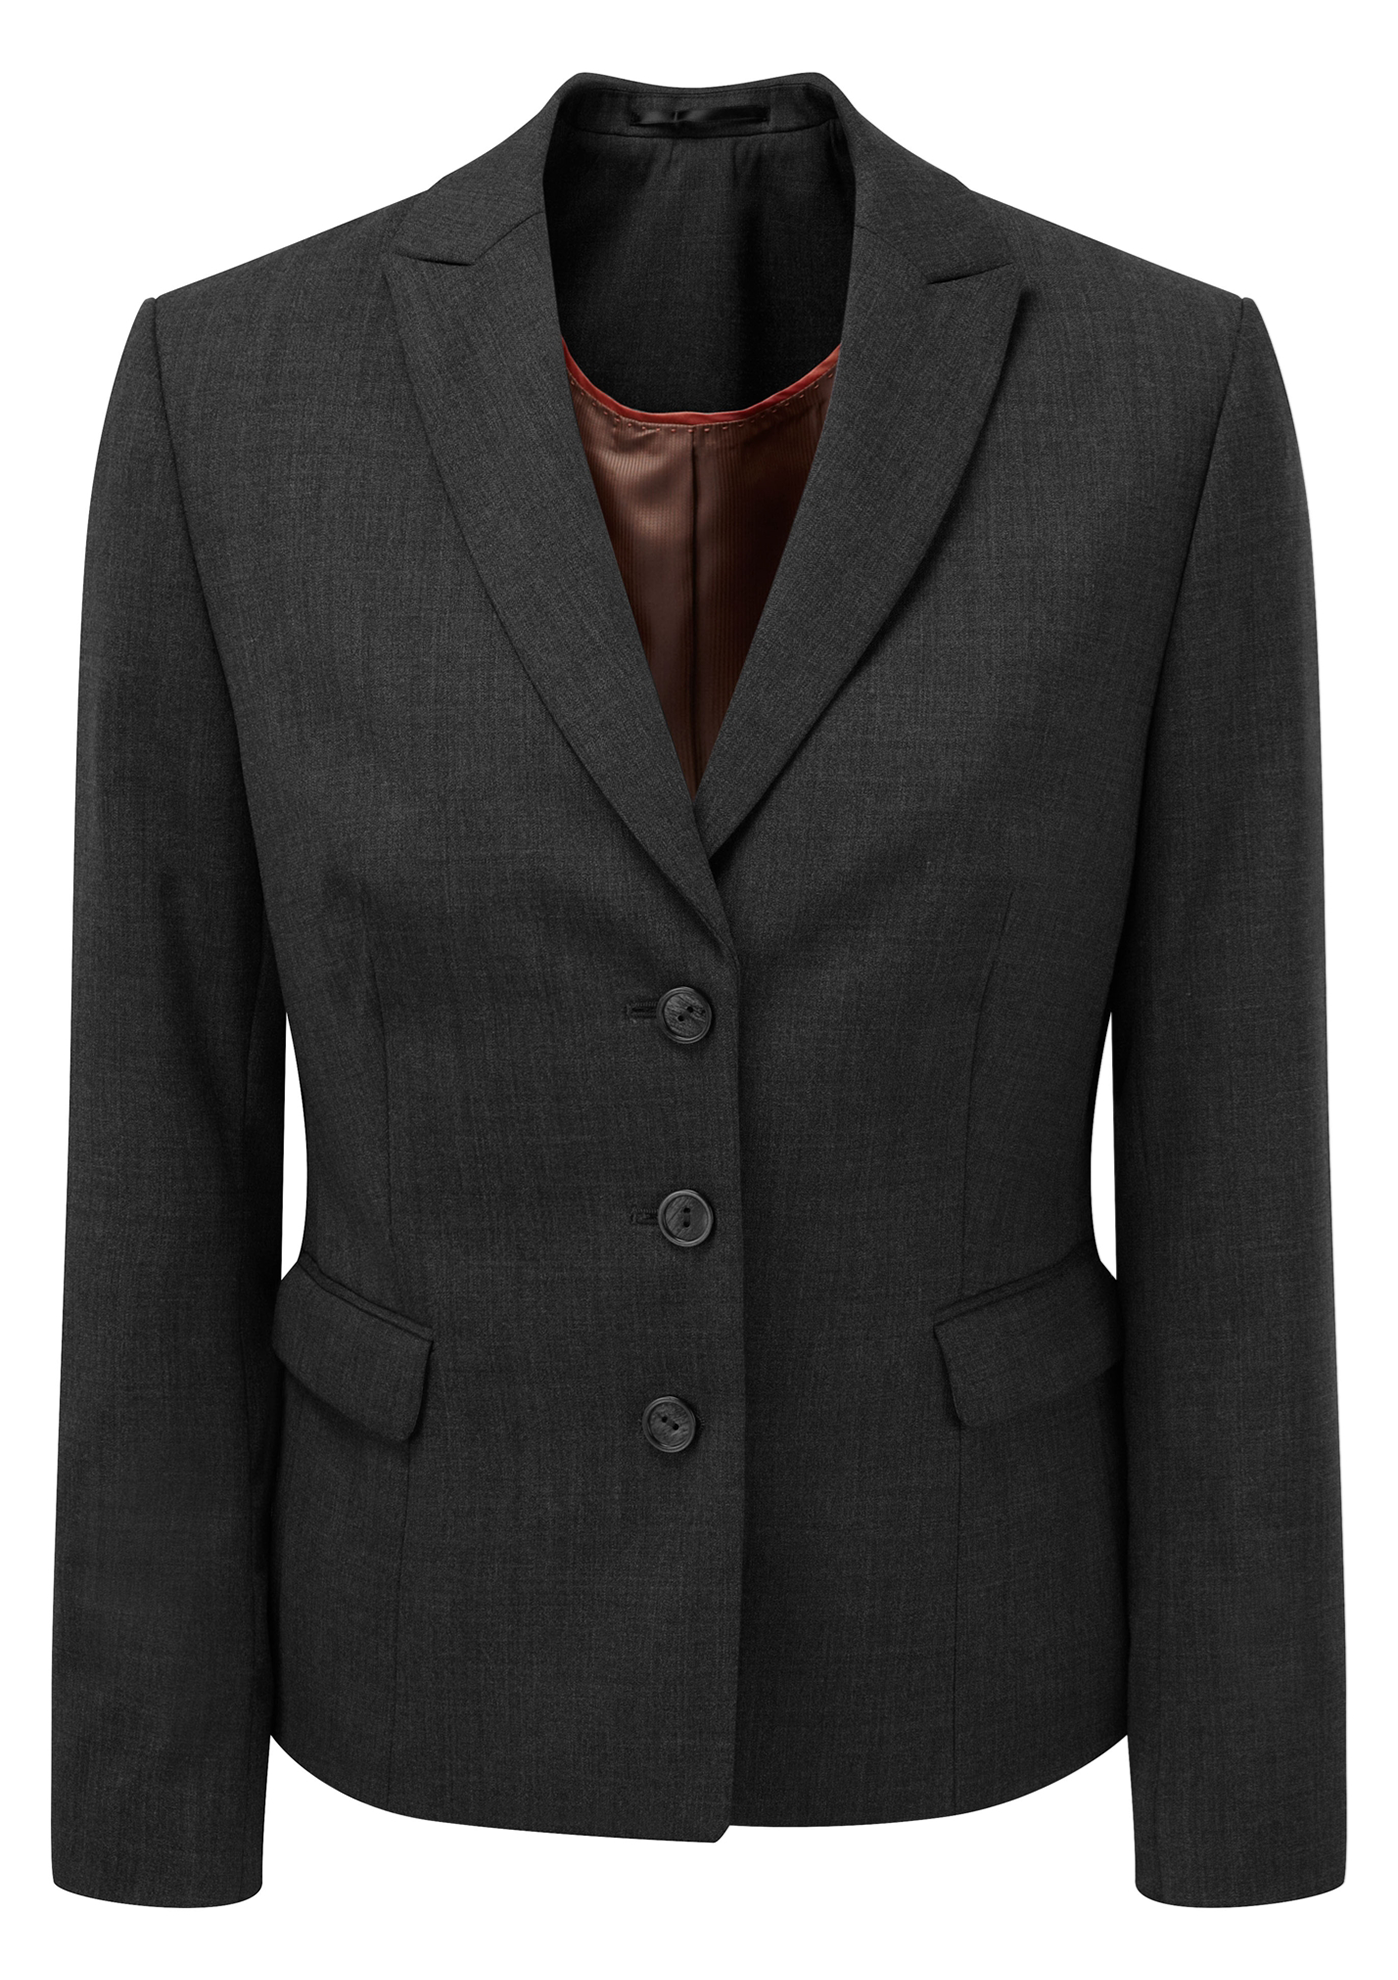 Picture of Ritz Tailored Fit Jacket - Black